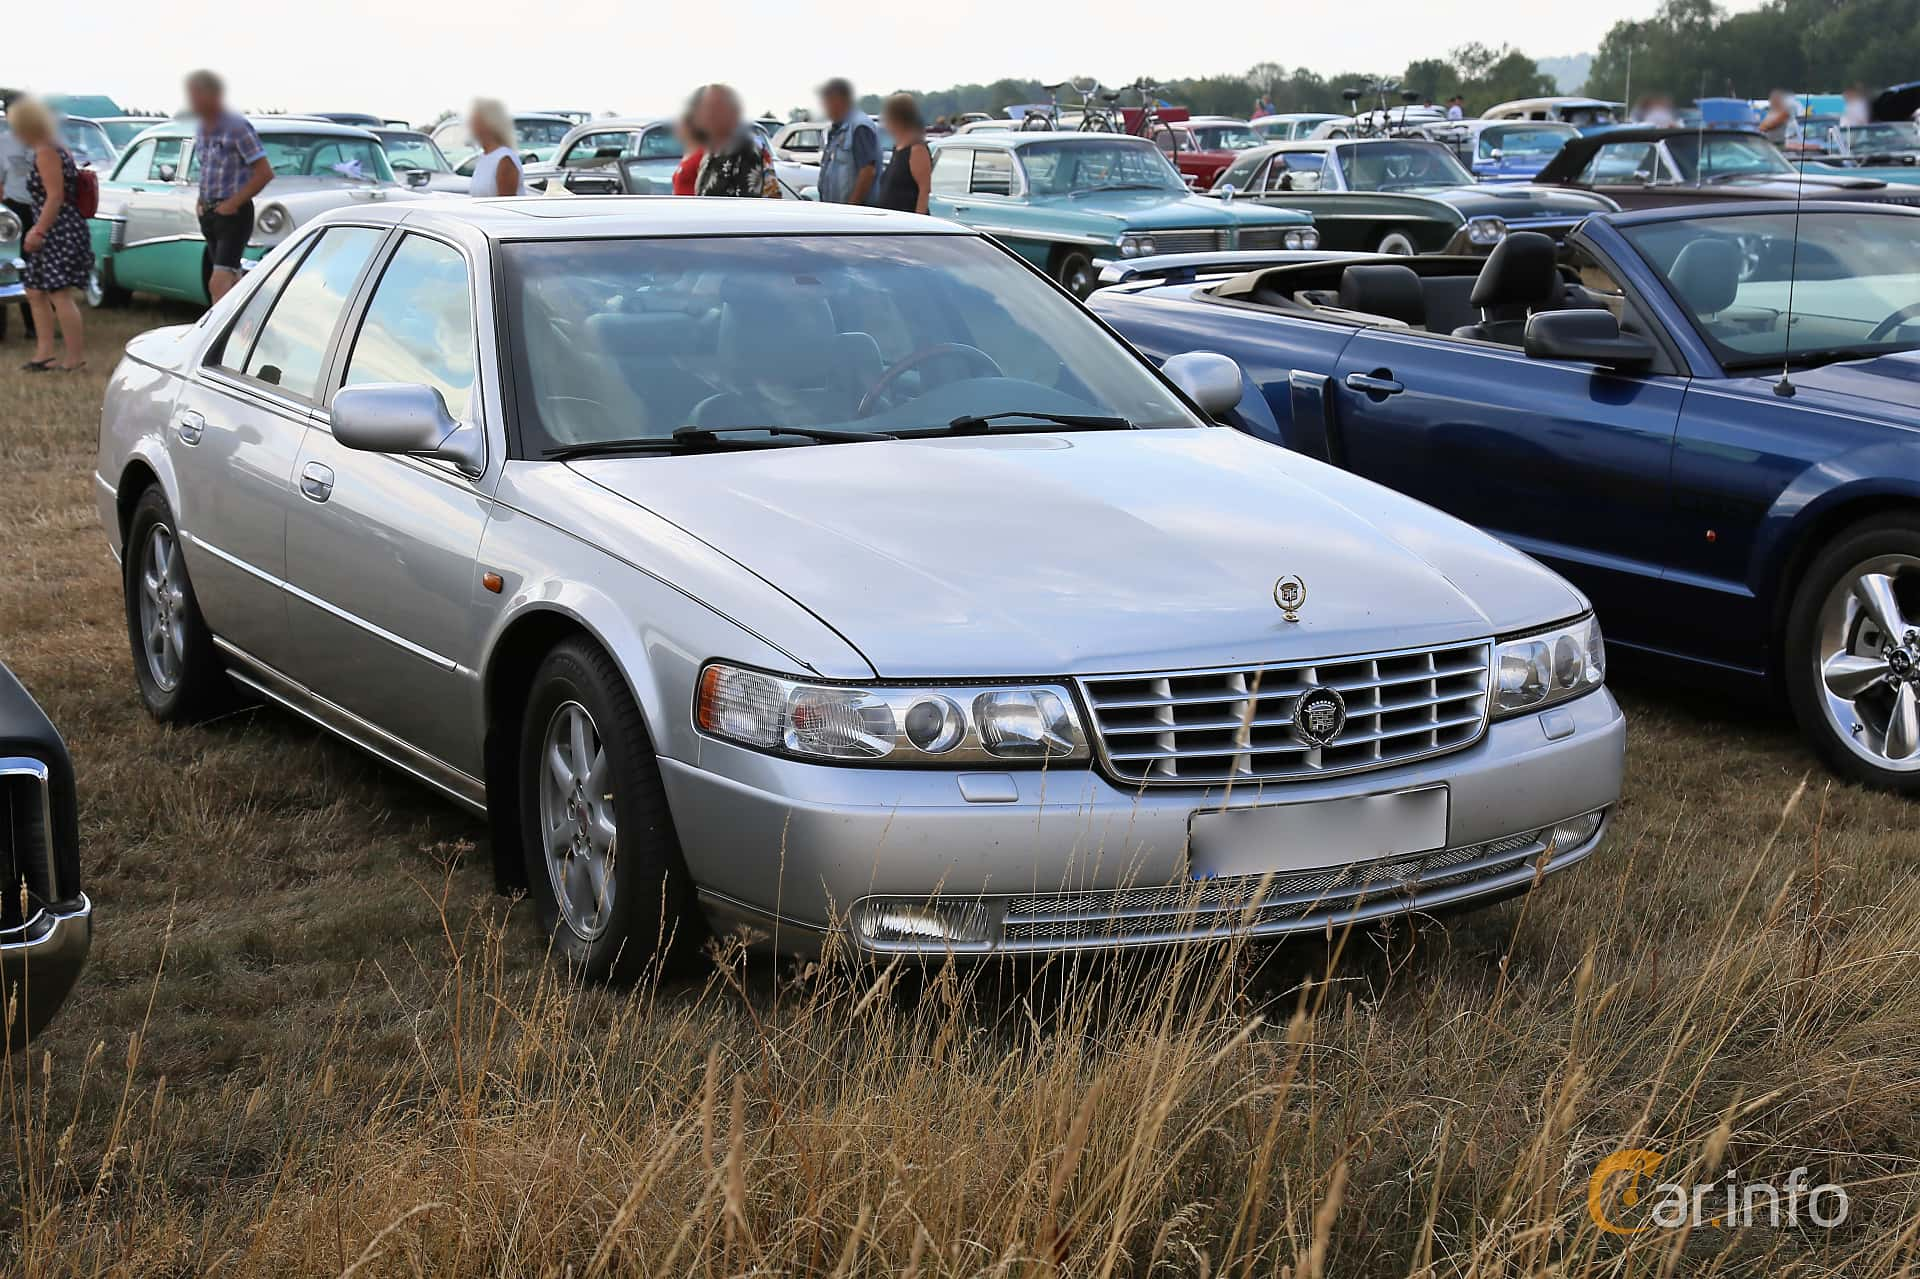 1 Images Of Cadillac Seville Sts 4 6 V8 Automatic 305hp 2001 By Espee